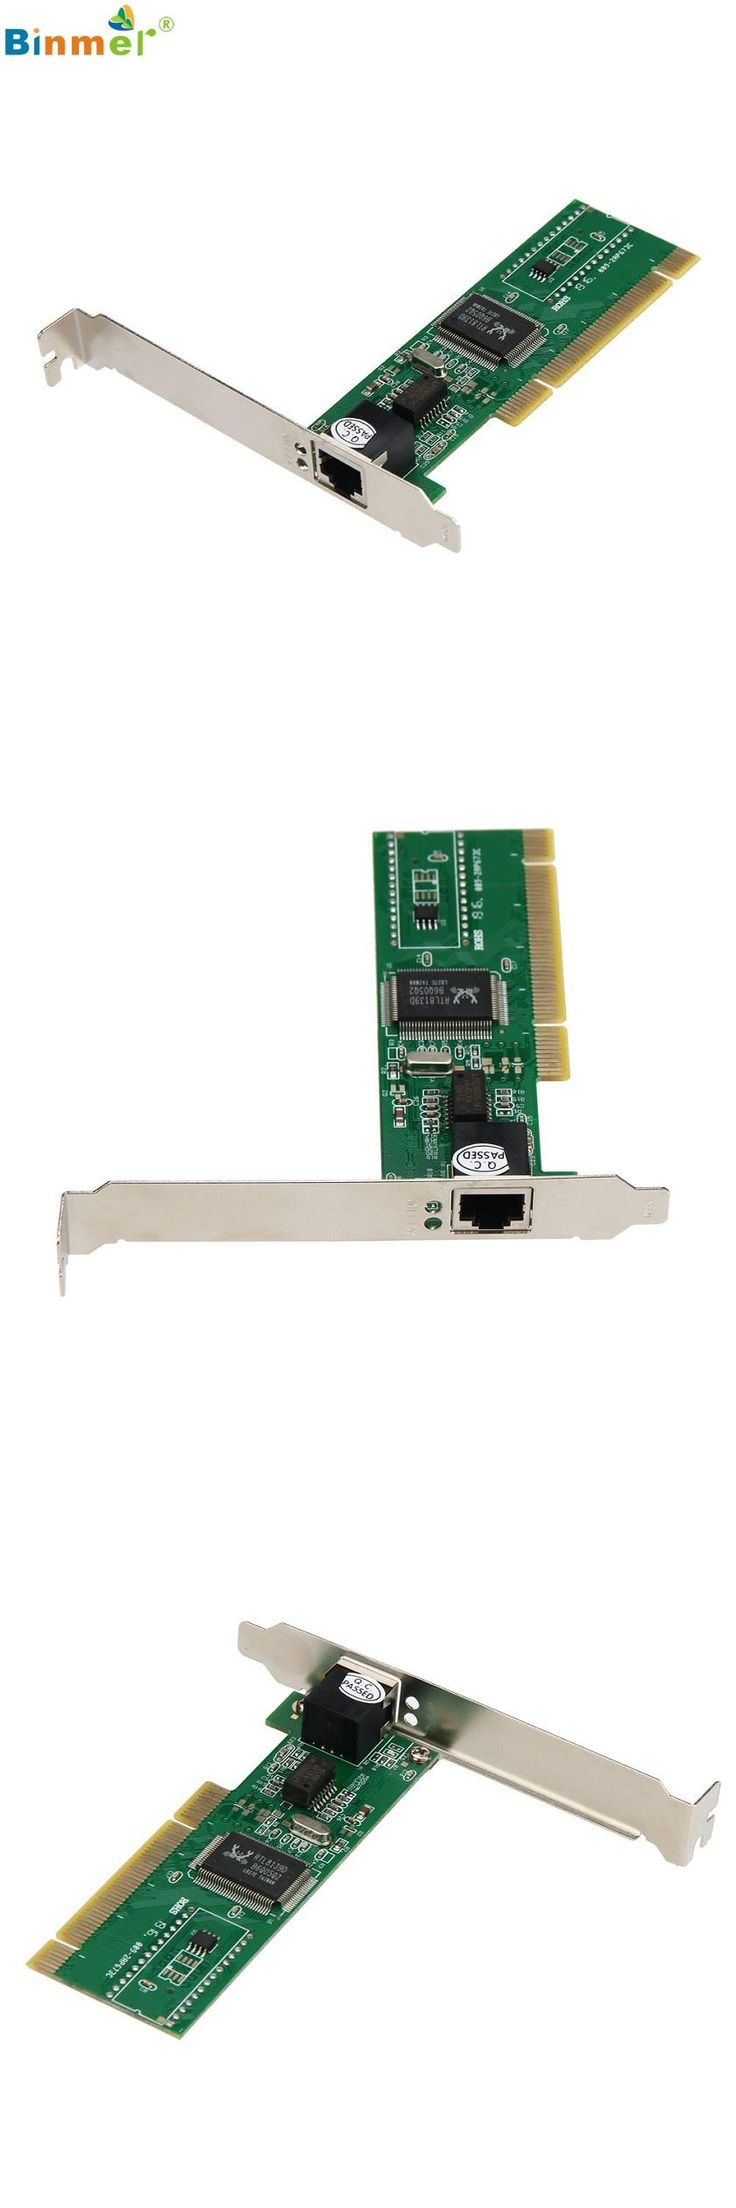 [Visit to Buy] Adroit New 10/100 Mbps NIC RJ45 RTL8139D LAN Network PCI Card Adapter for Computer PC MAR30 #Advertisement